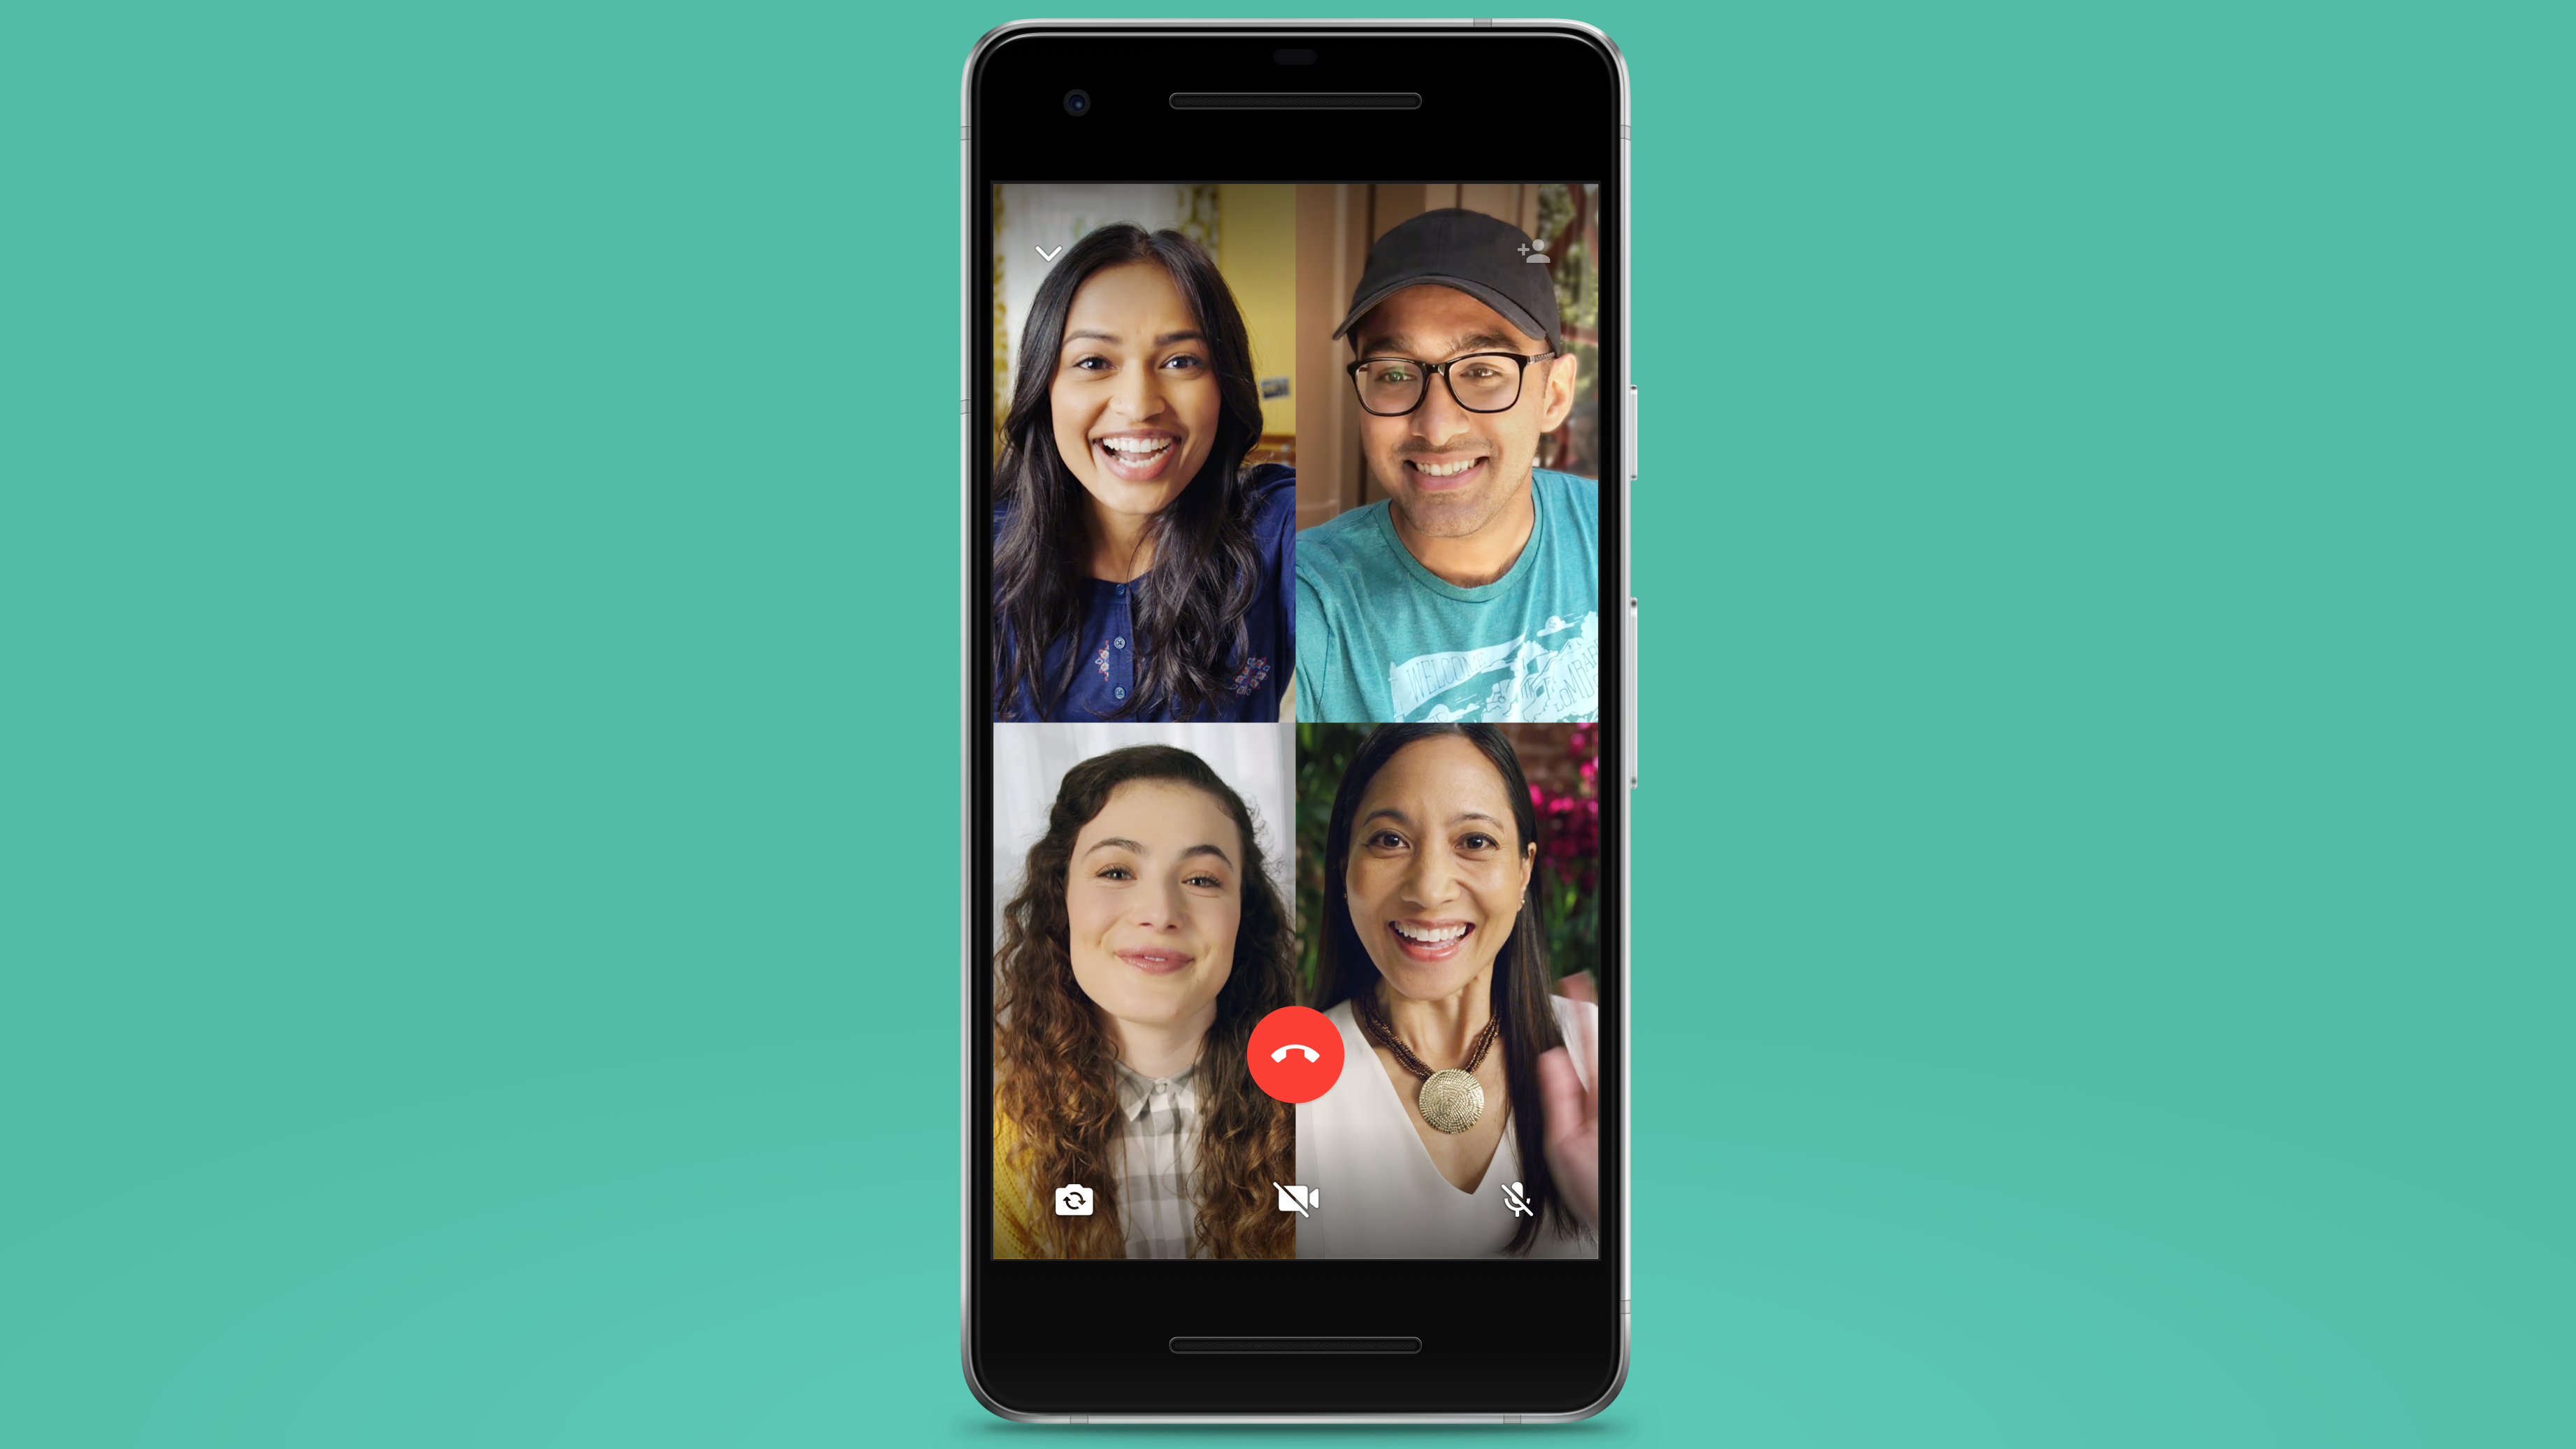 WhatsApp group calls are now live for Android and iOS | TechRadar